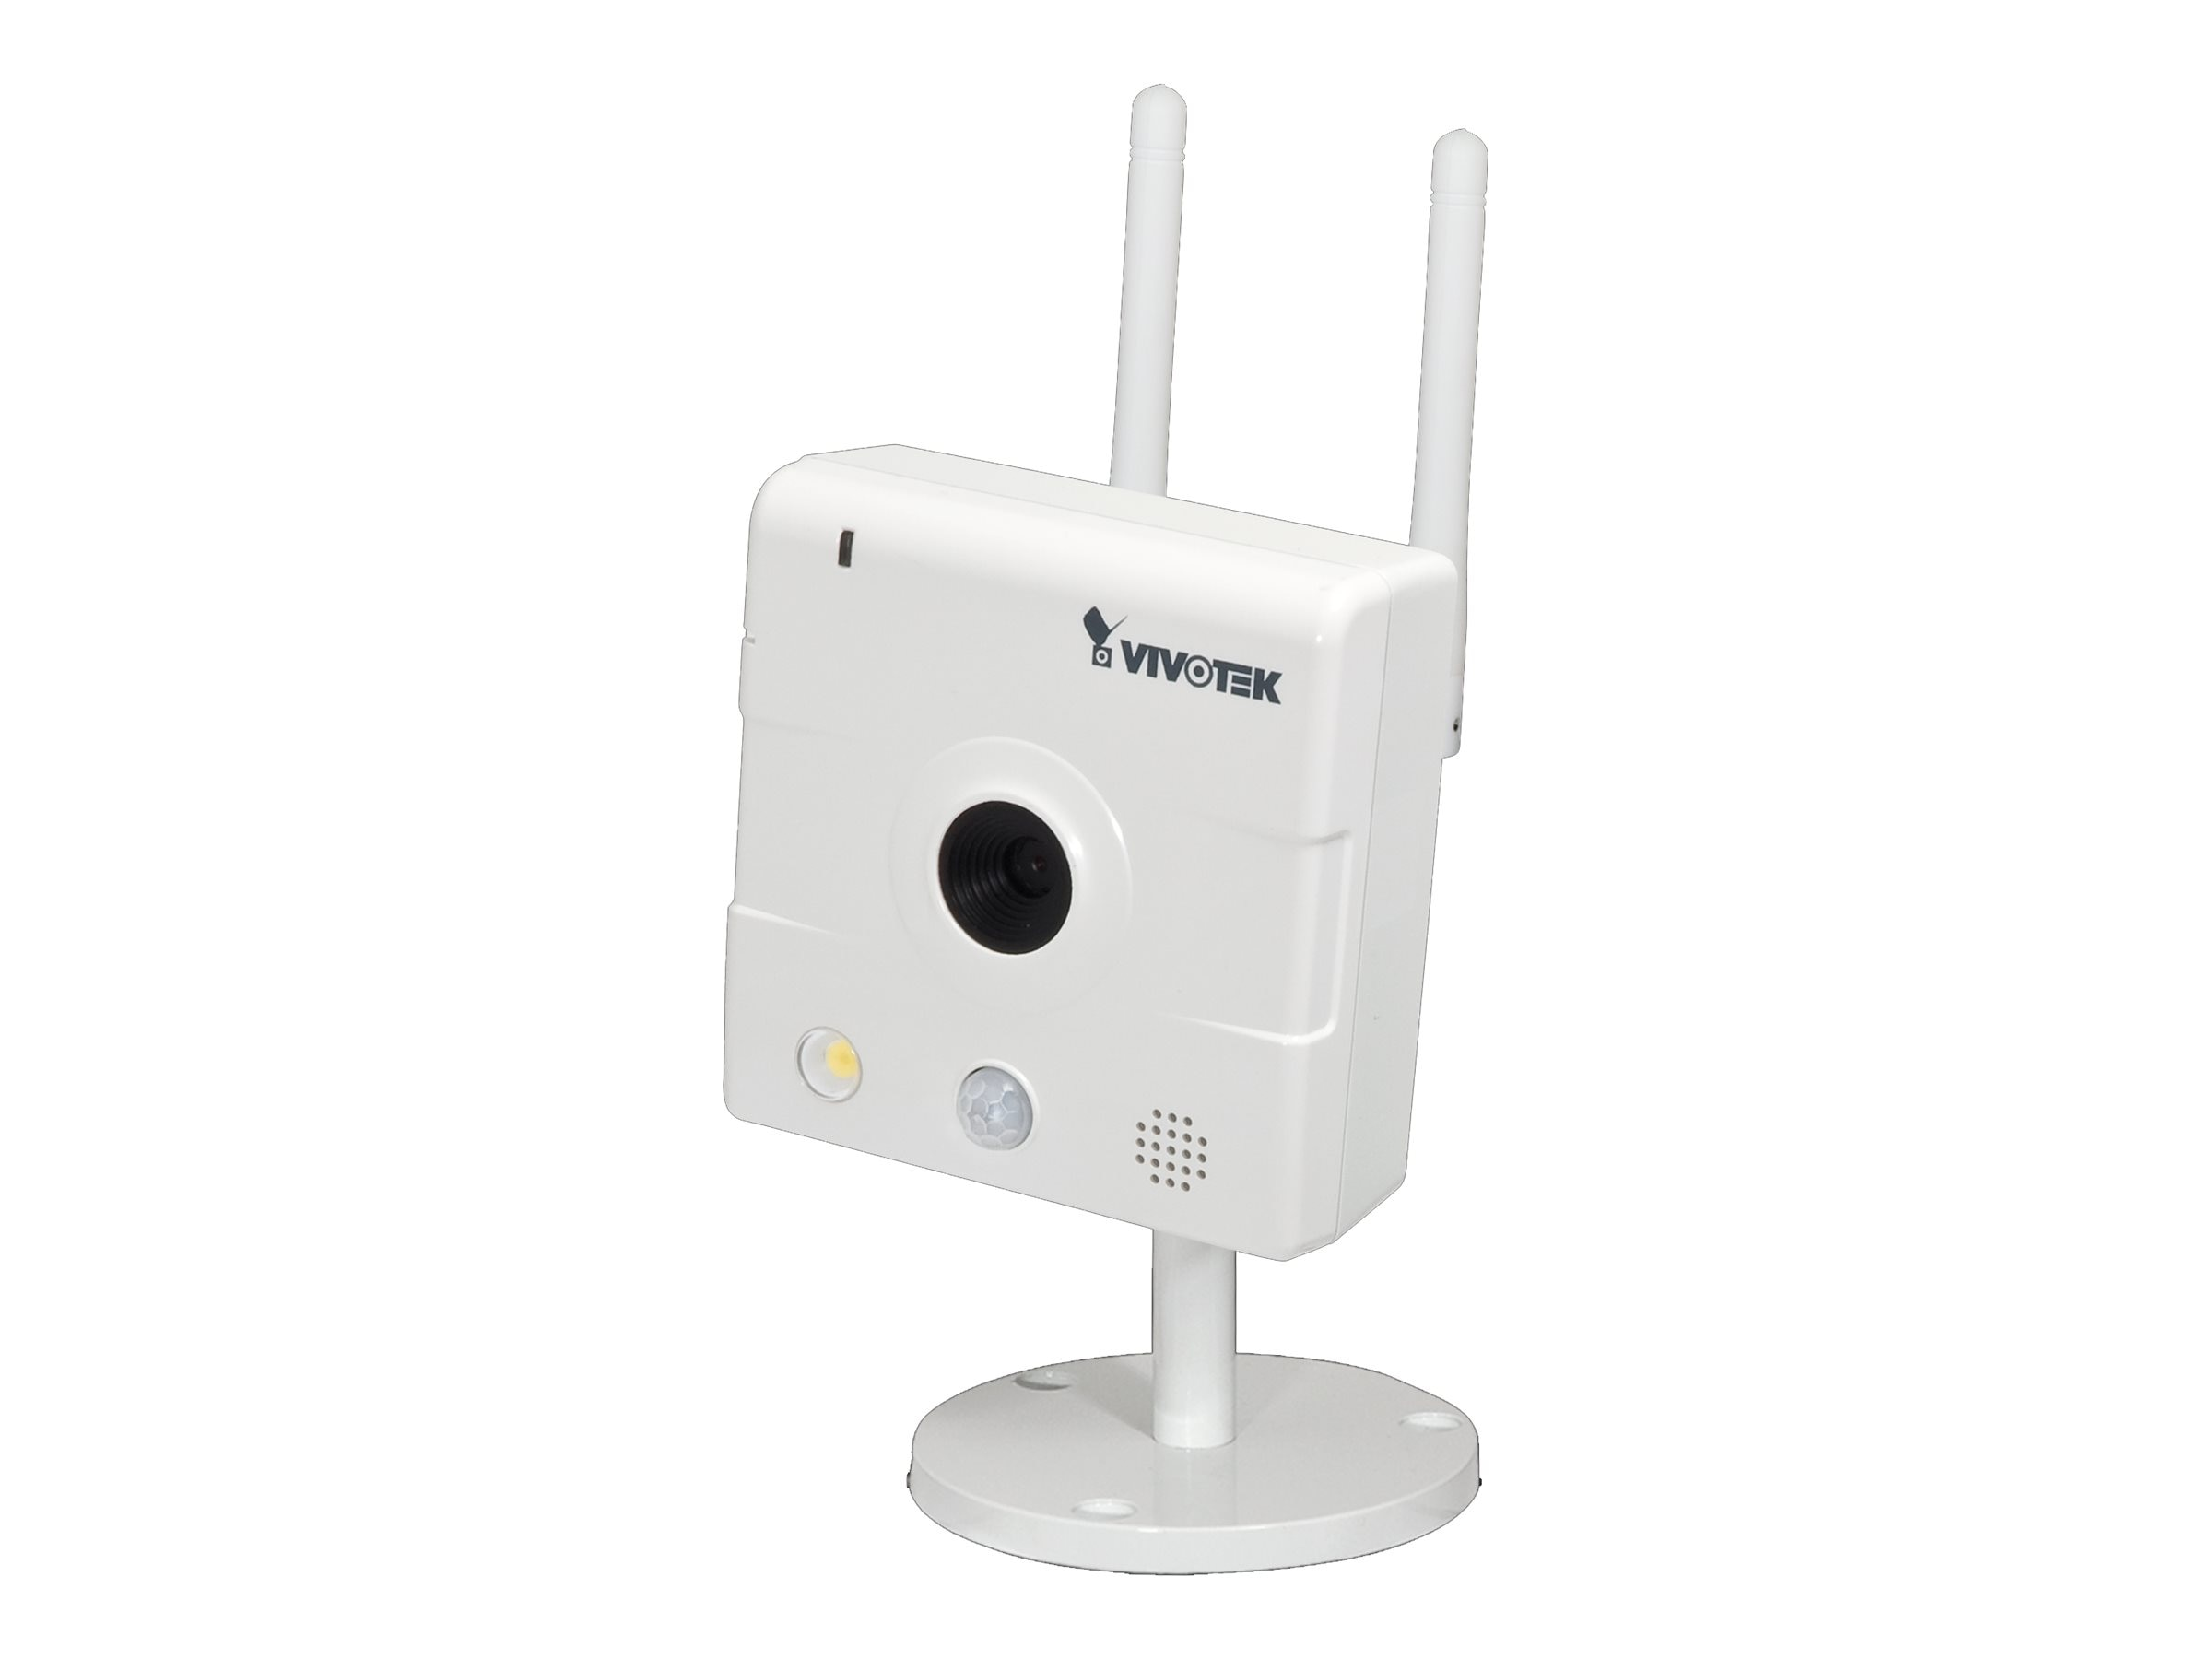 Vivotek IP8133W 1MP Fixed Network Wireless Home Security Camera, IP8133W, 13428381, Cameras - Security